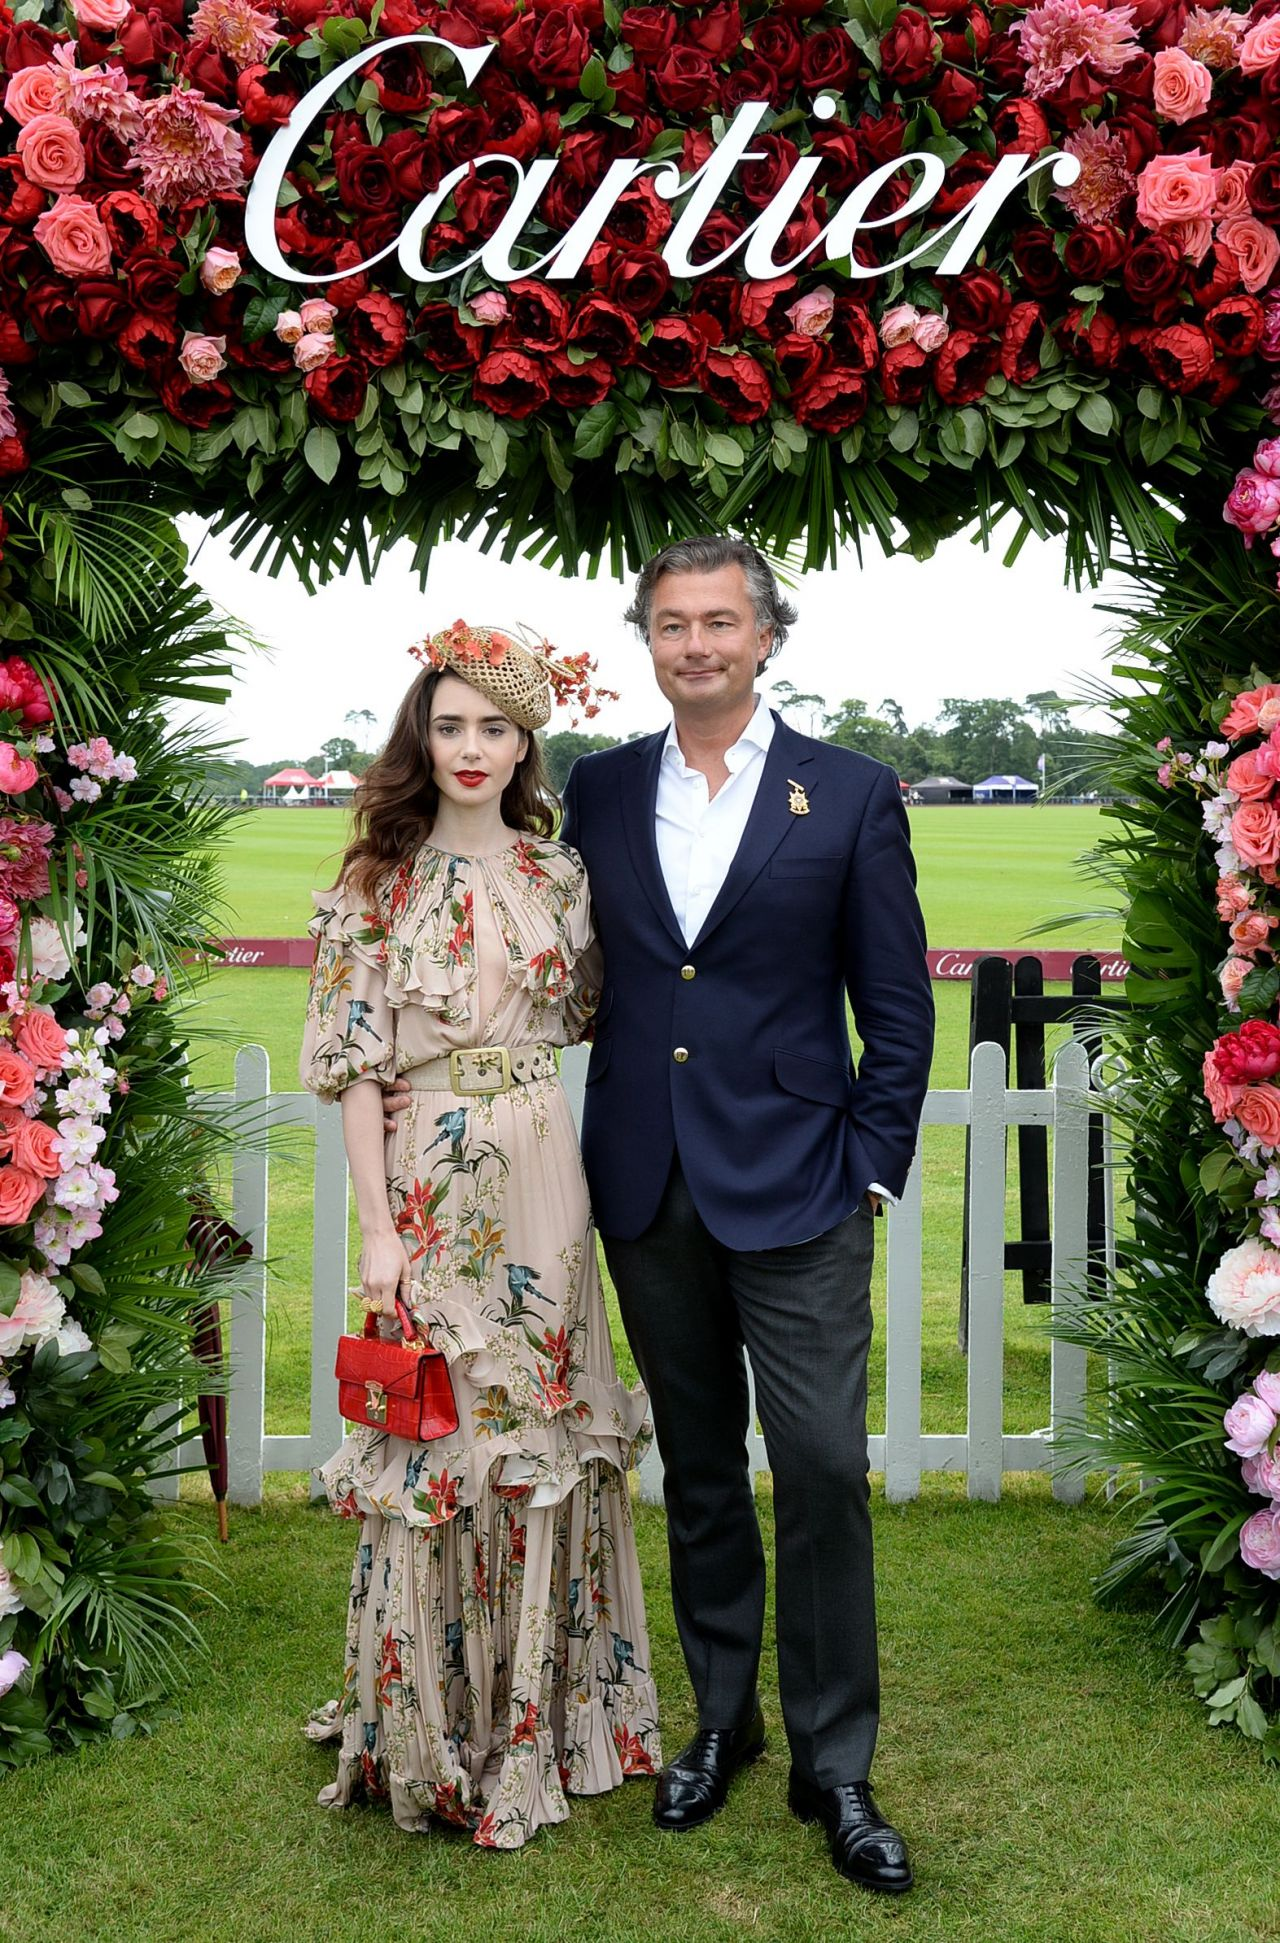 Lily Collins Cartier Queens Cup Polo In Windsor 06 17 2018